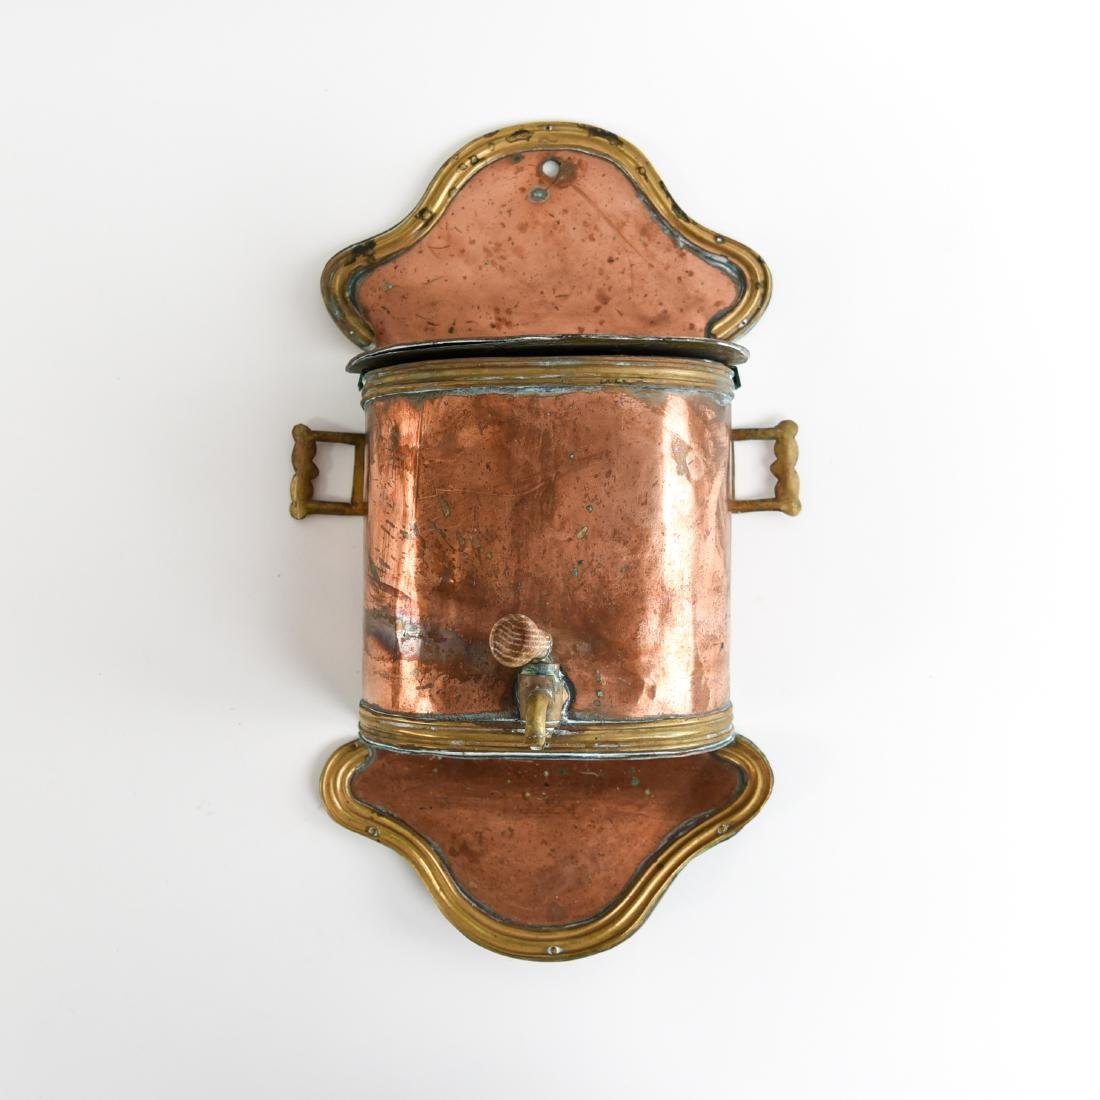 COPPER WALL MOUNT FOUNTAIN WASHING LAVABO